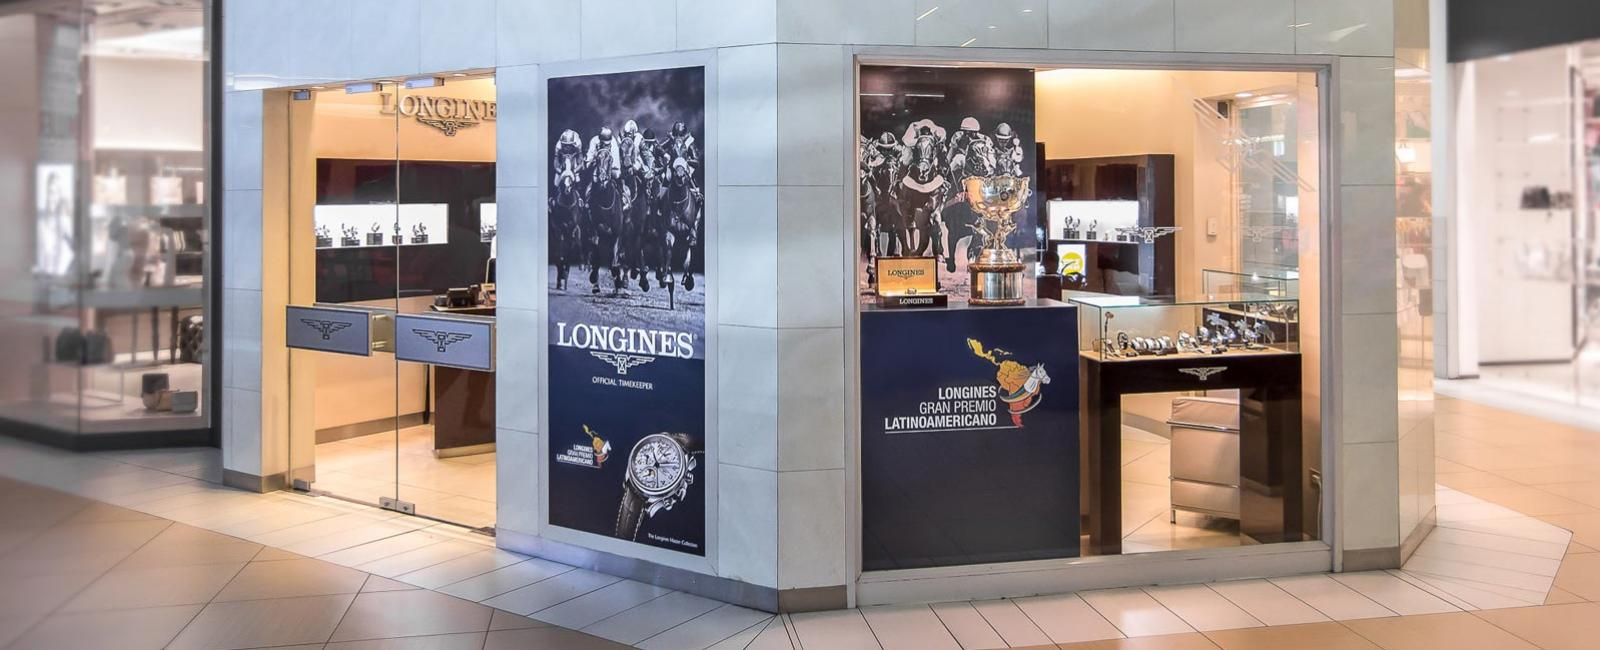 The Longines Gran Premio Latinoamericano trophy is on display in the Longines Boutique in Santiago; February; 2017